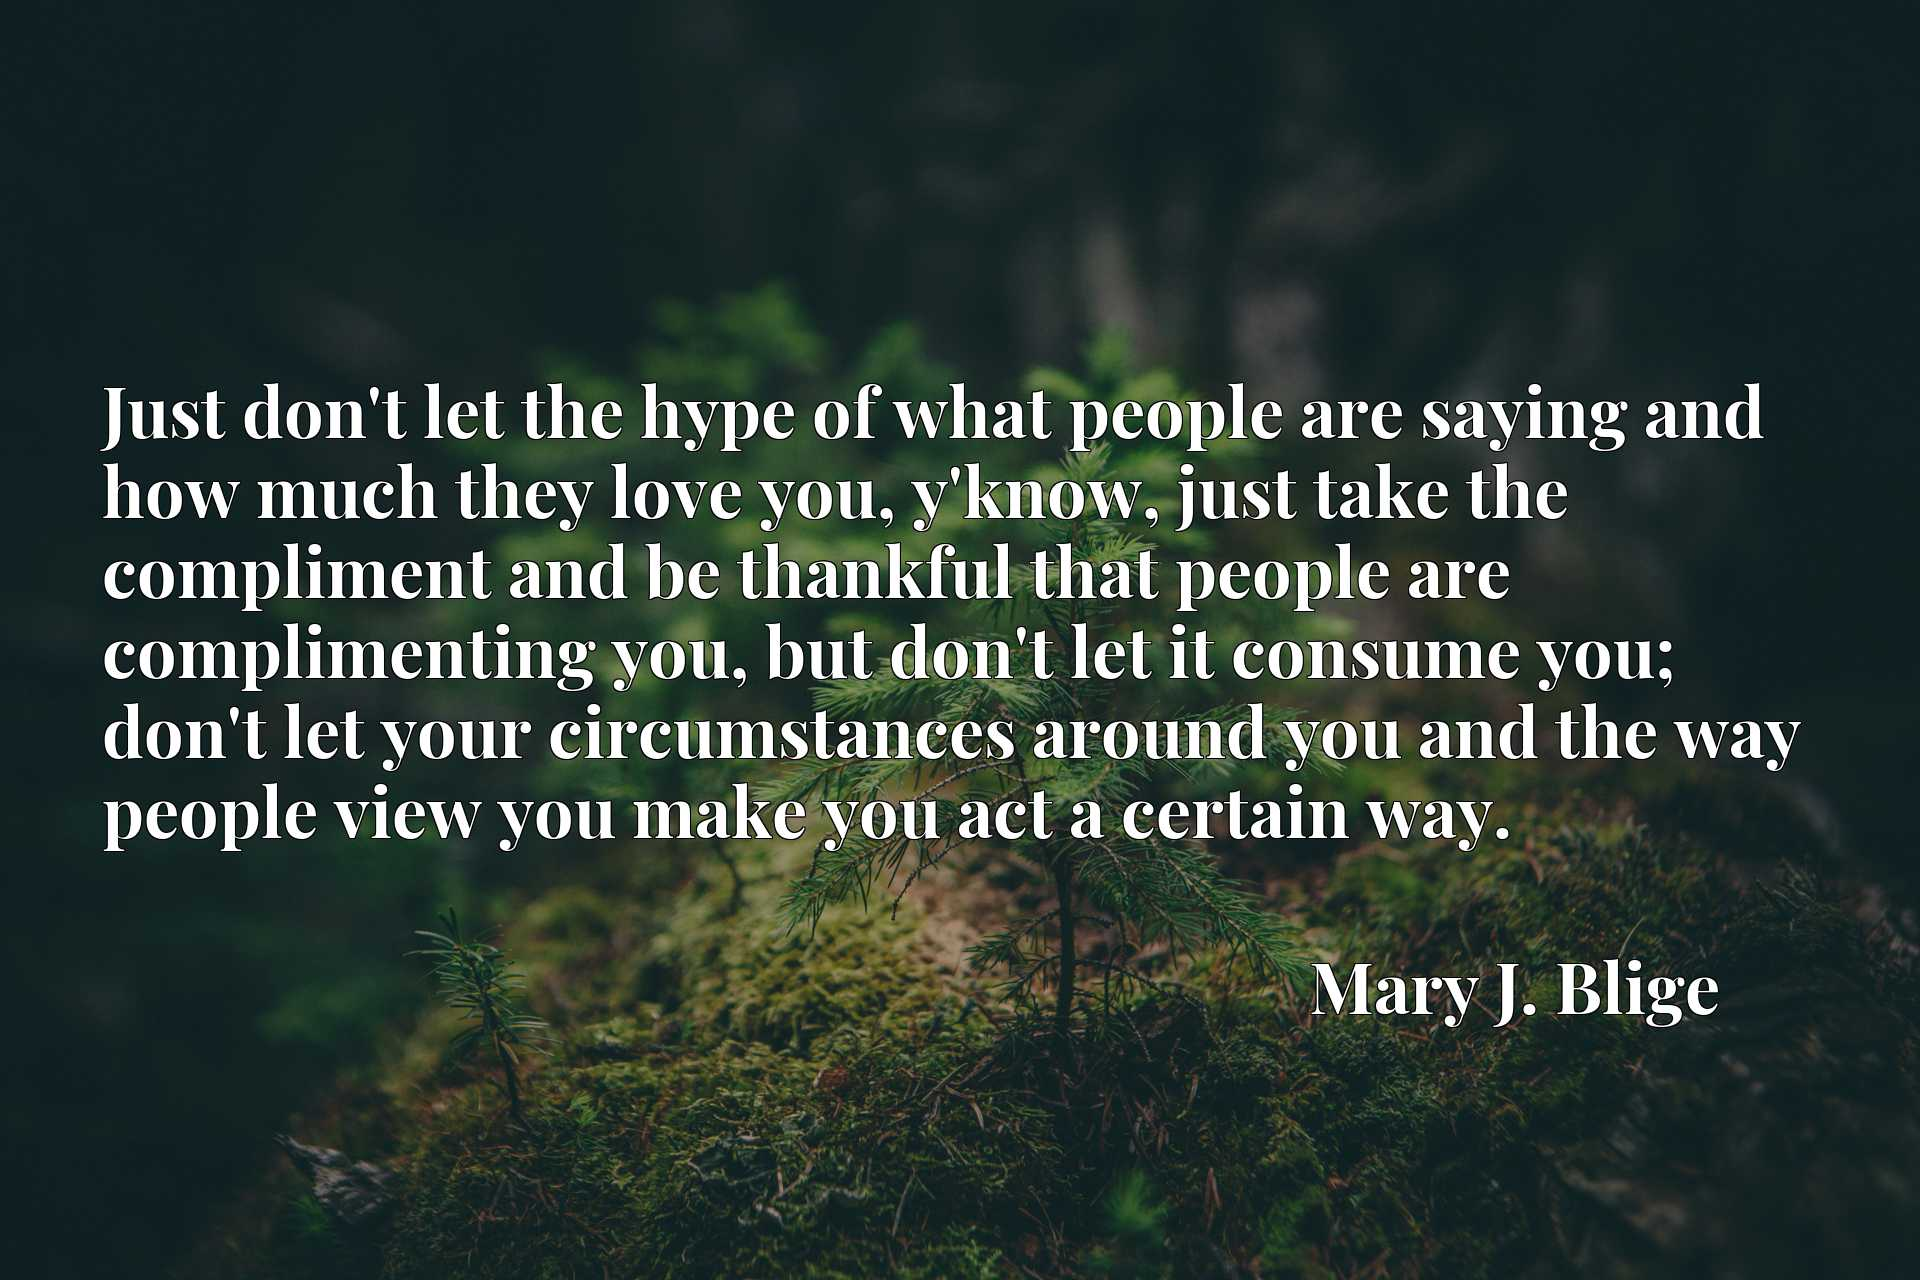 Just don't let the hype of what people are saying and how much they love you, y'know, just take the compliment and be thankful that people are complimenting you, but don't let it consume you; don't let your circumstances around you and the way people view you make you act a certain way.